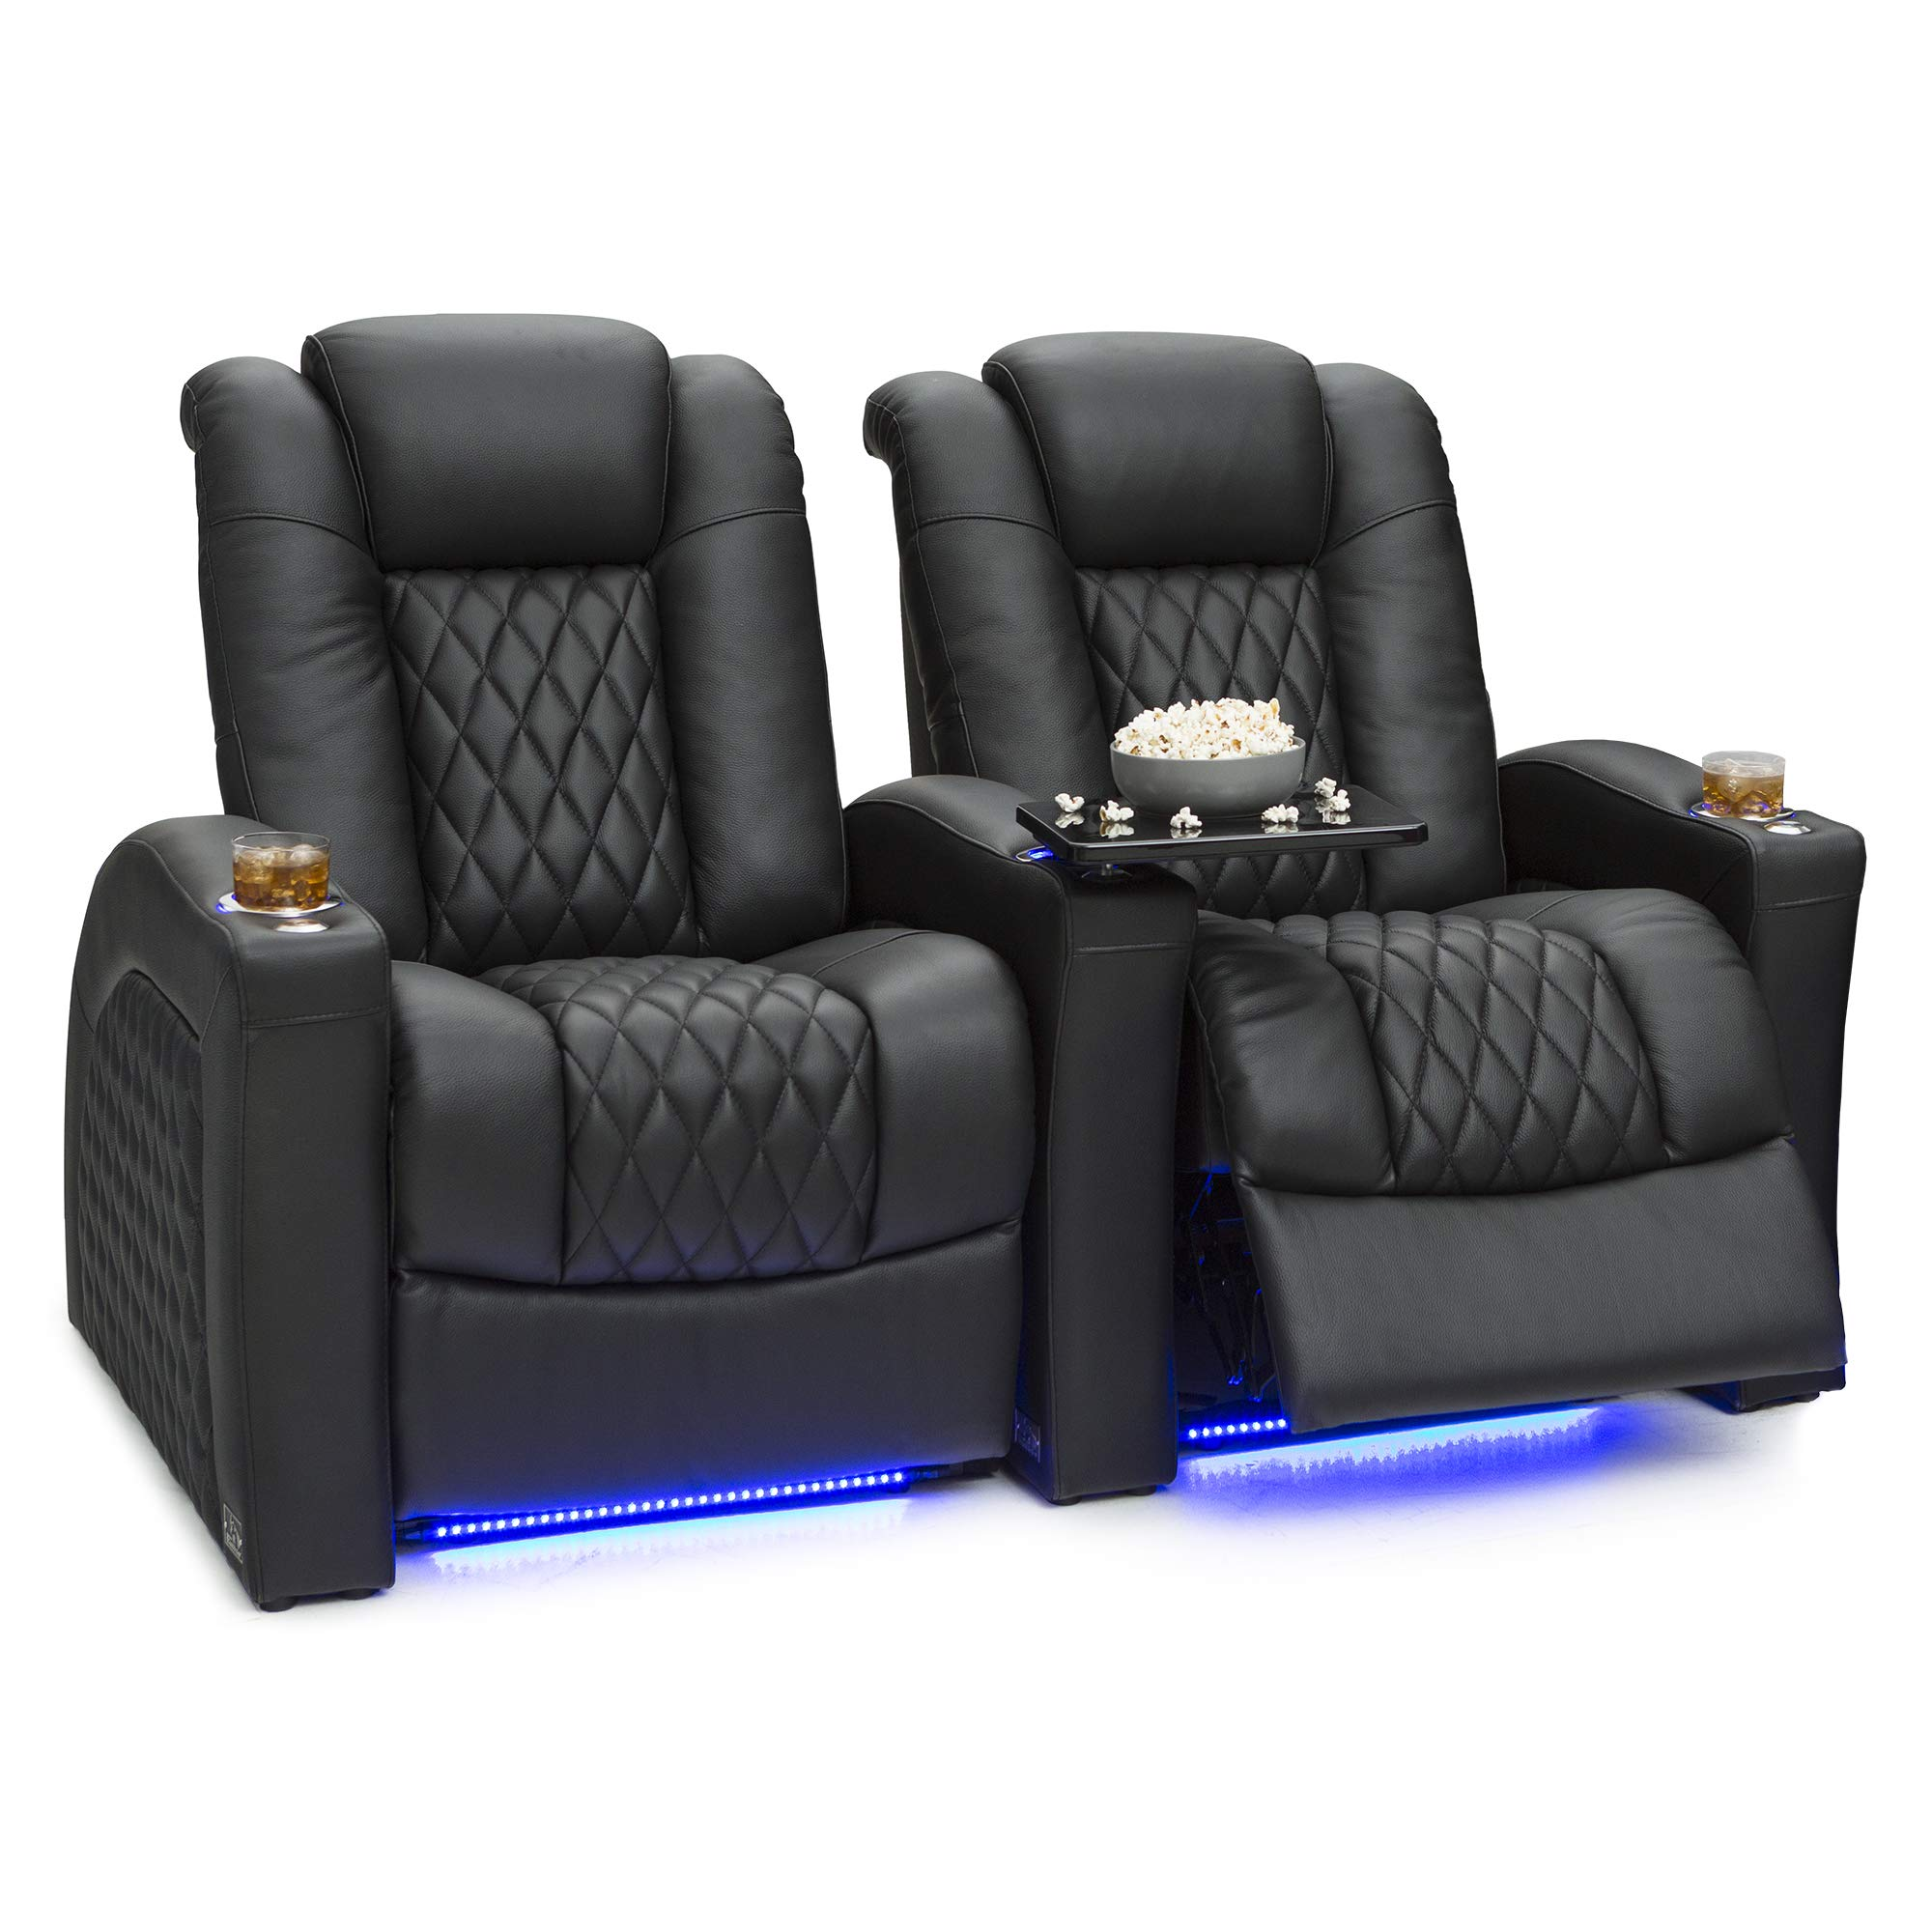 Seatcraft Stanza - Home Theater Seating - Power Recliners - Leather - Adjustable Powered Headrest and Lumbar Support - Cup Holders - USB Charging - Ambient Lighting- SoundShaker - Row of 2 - Black by Seatcraft